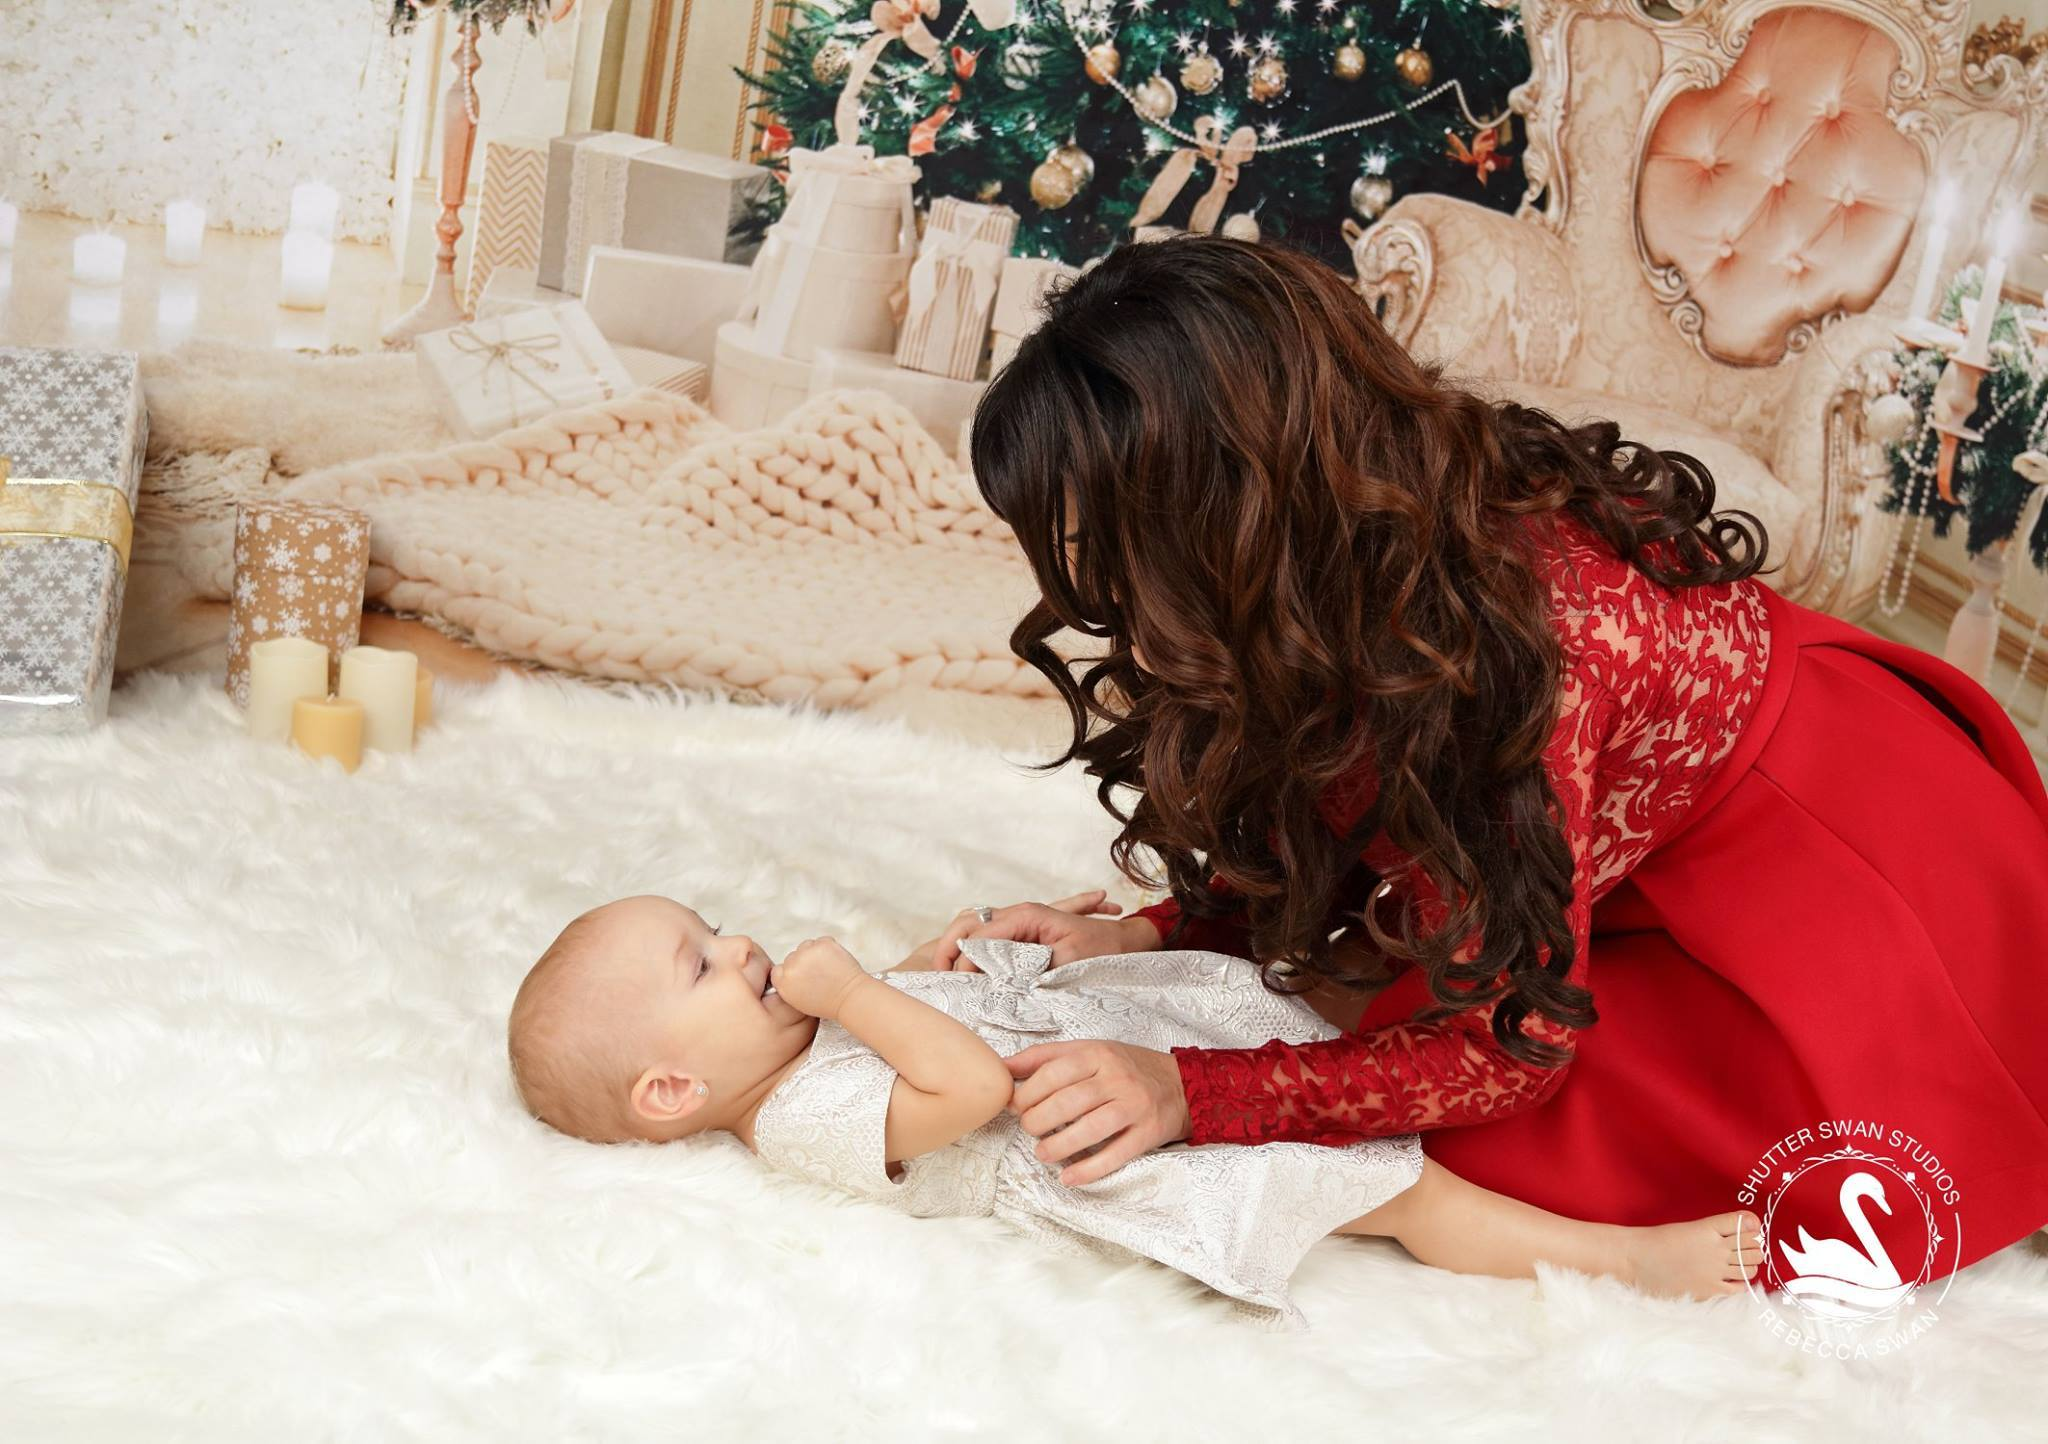 Load image into Gallery viewer, Katebackdrop:Kate Christmas luxury clean interior backdrop for holiday session